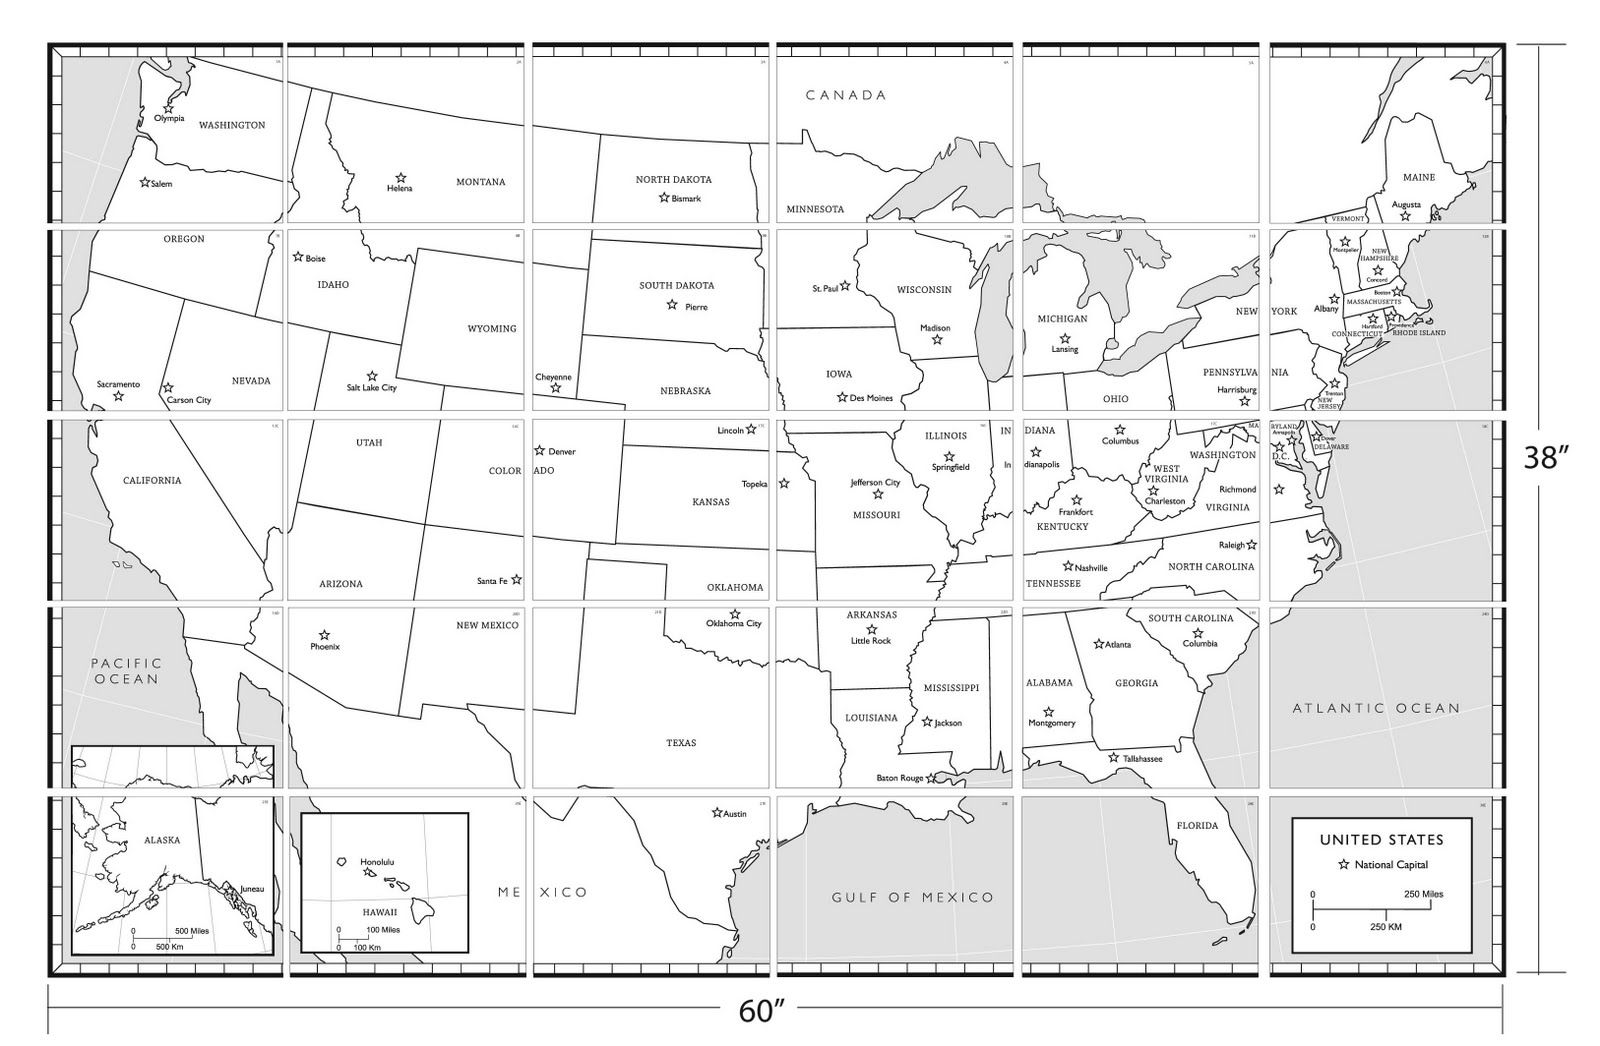 Blank Map Of United States Blank Map Of The United States For - Blank pictures of map of us